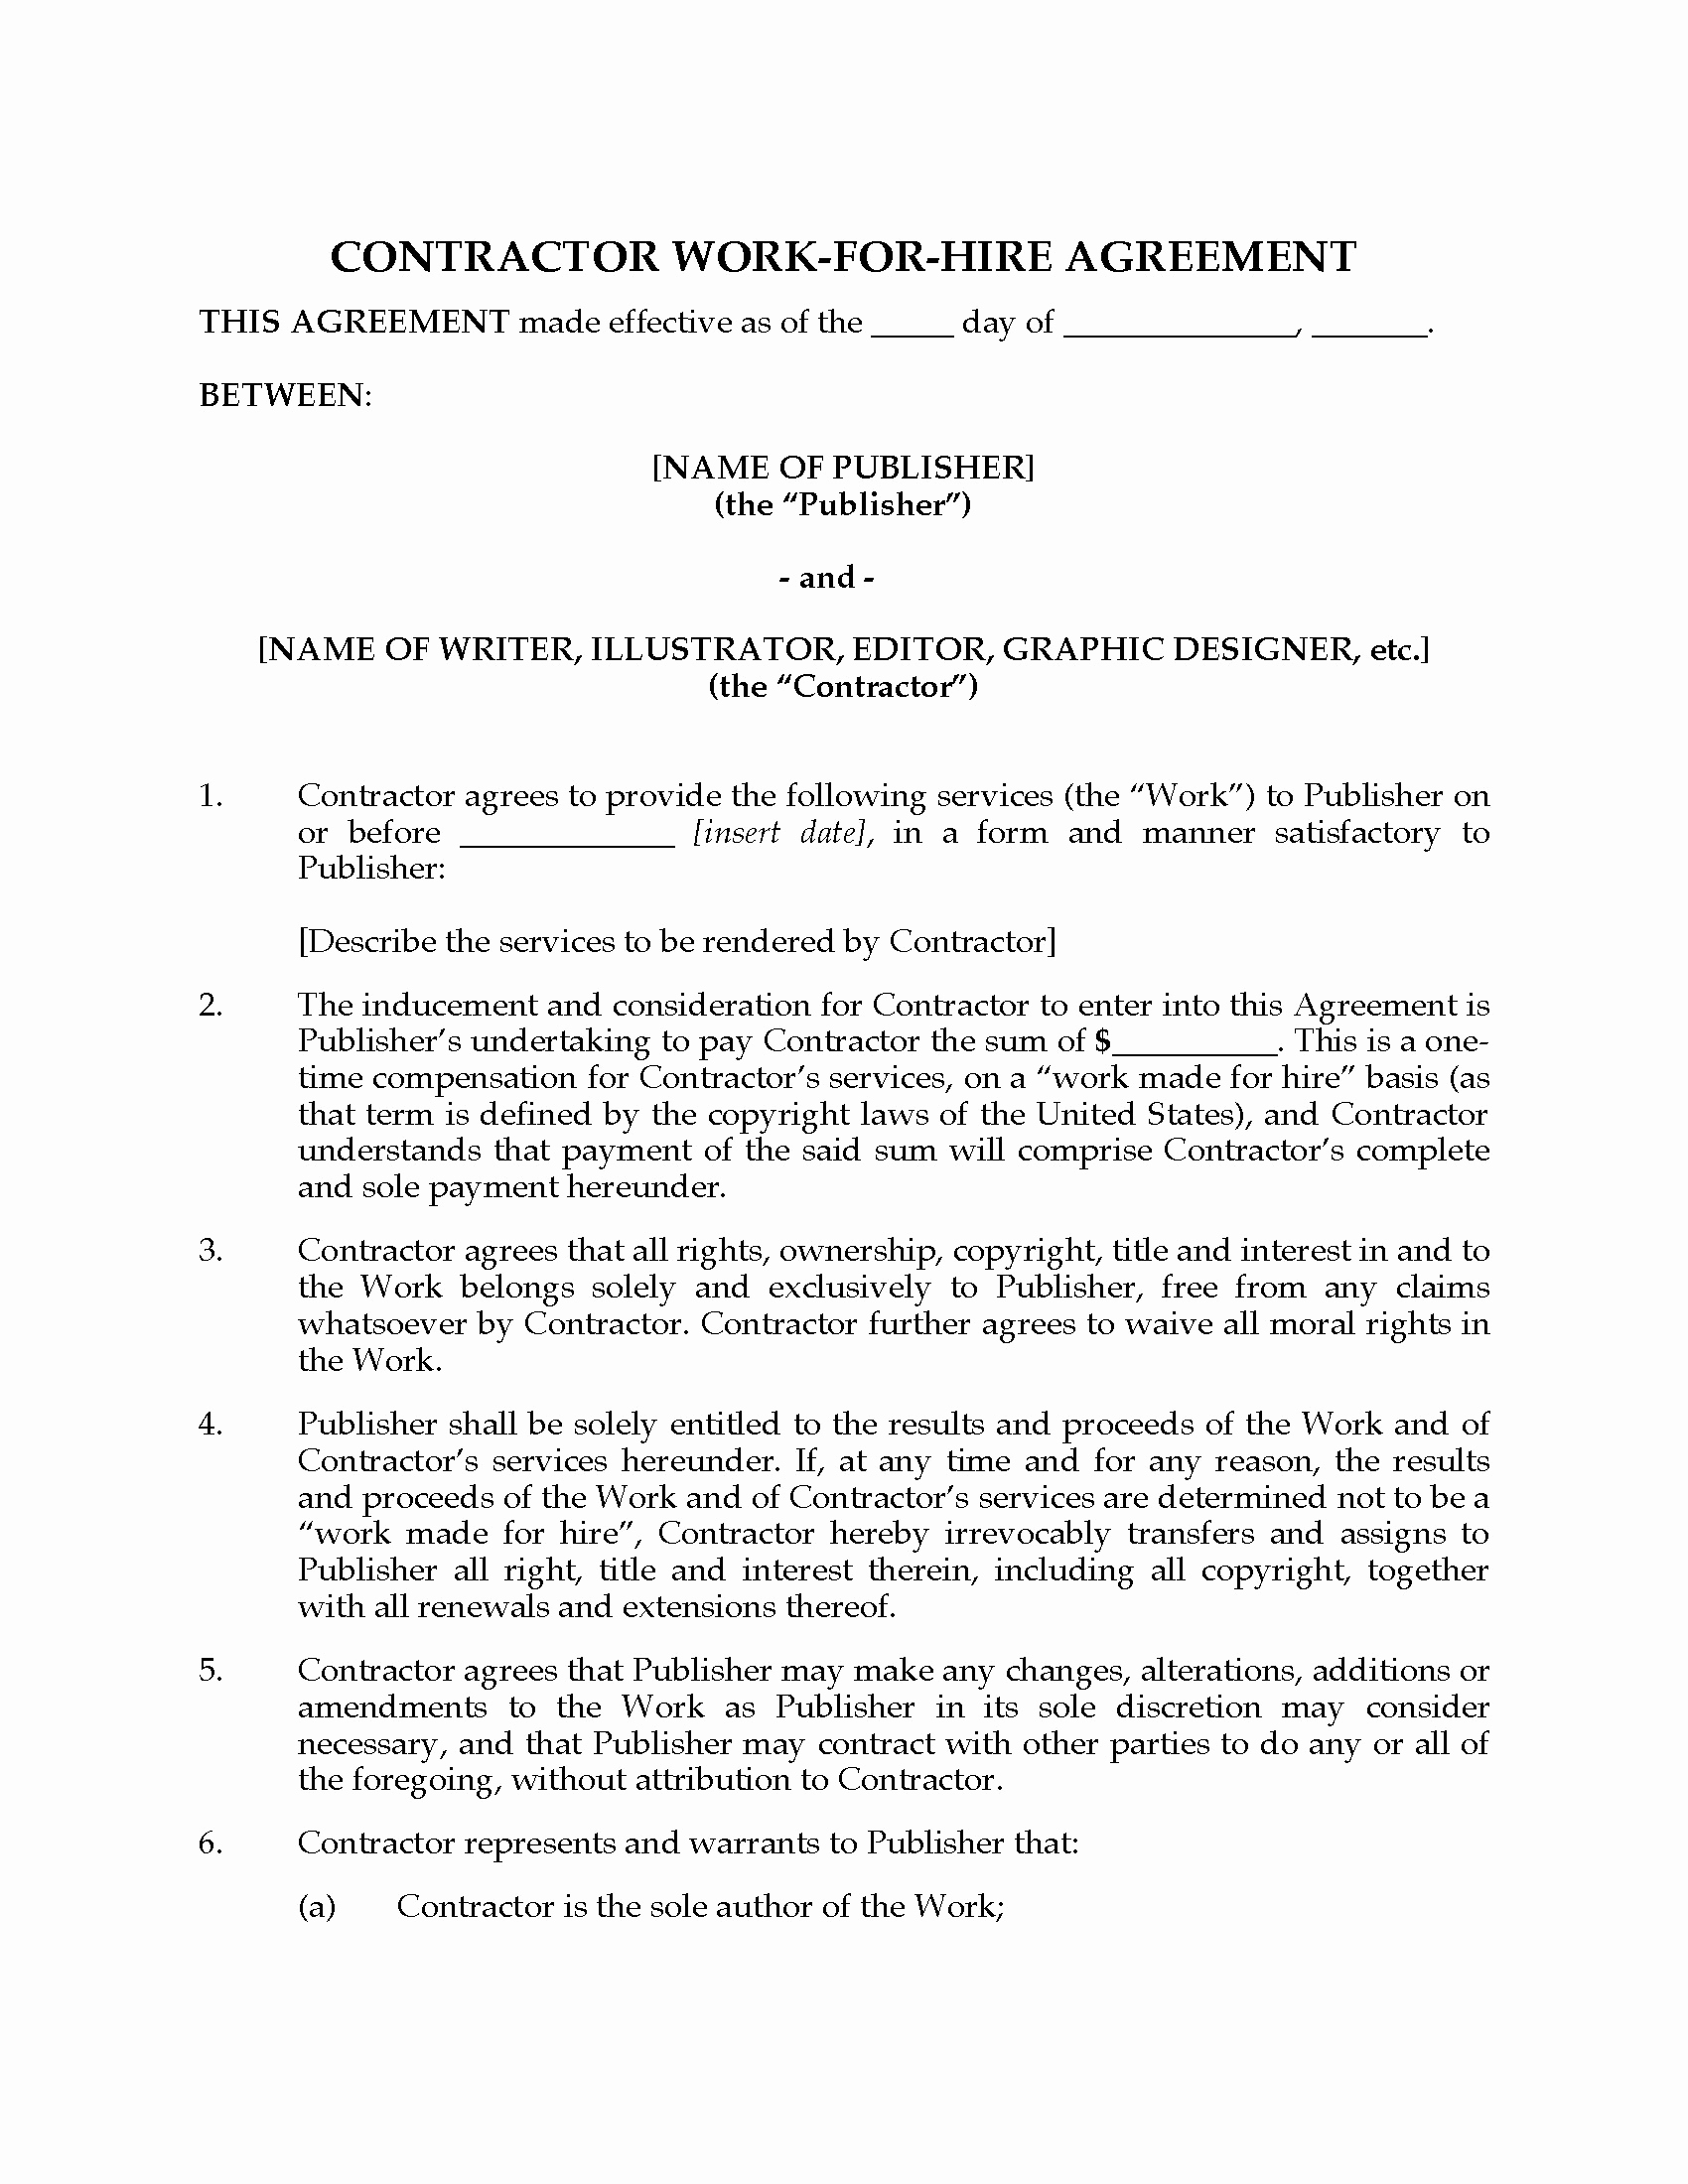 Work for Hire Agreement Template Inspirational Usa Work for Hire Agreement for Artists and Writers